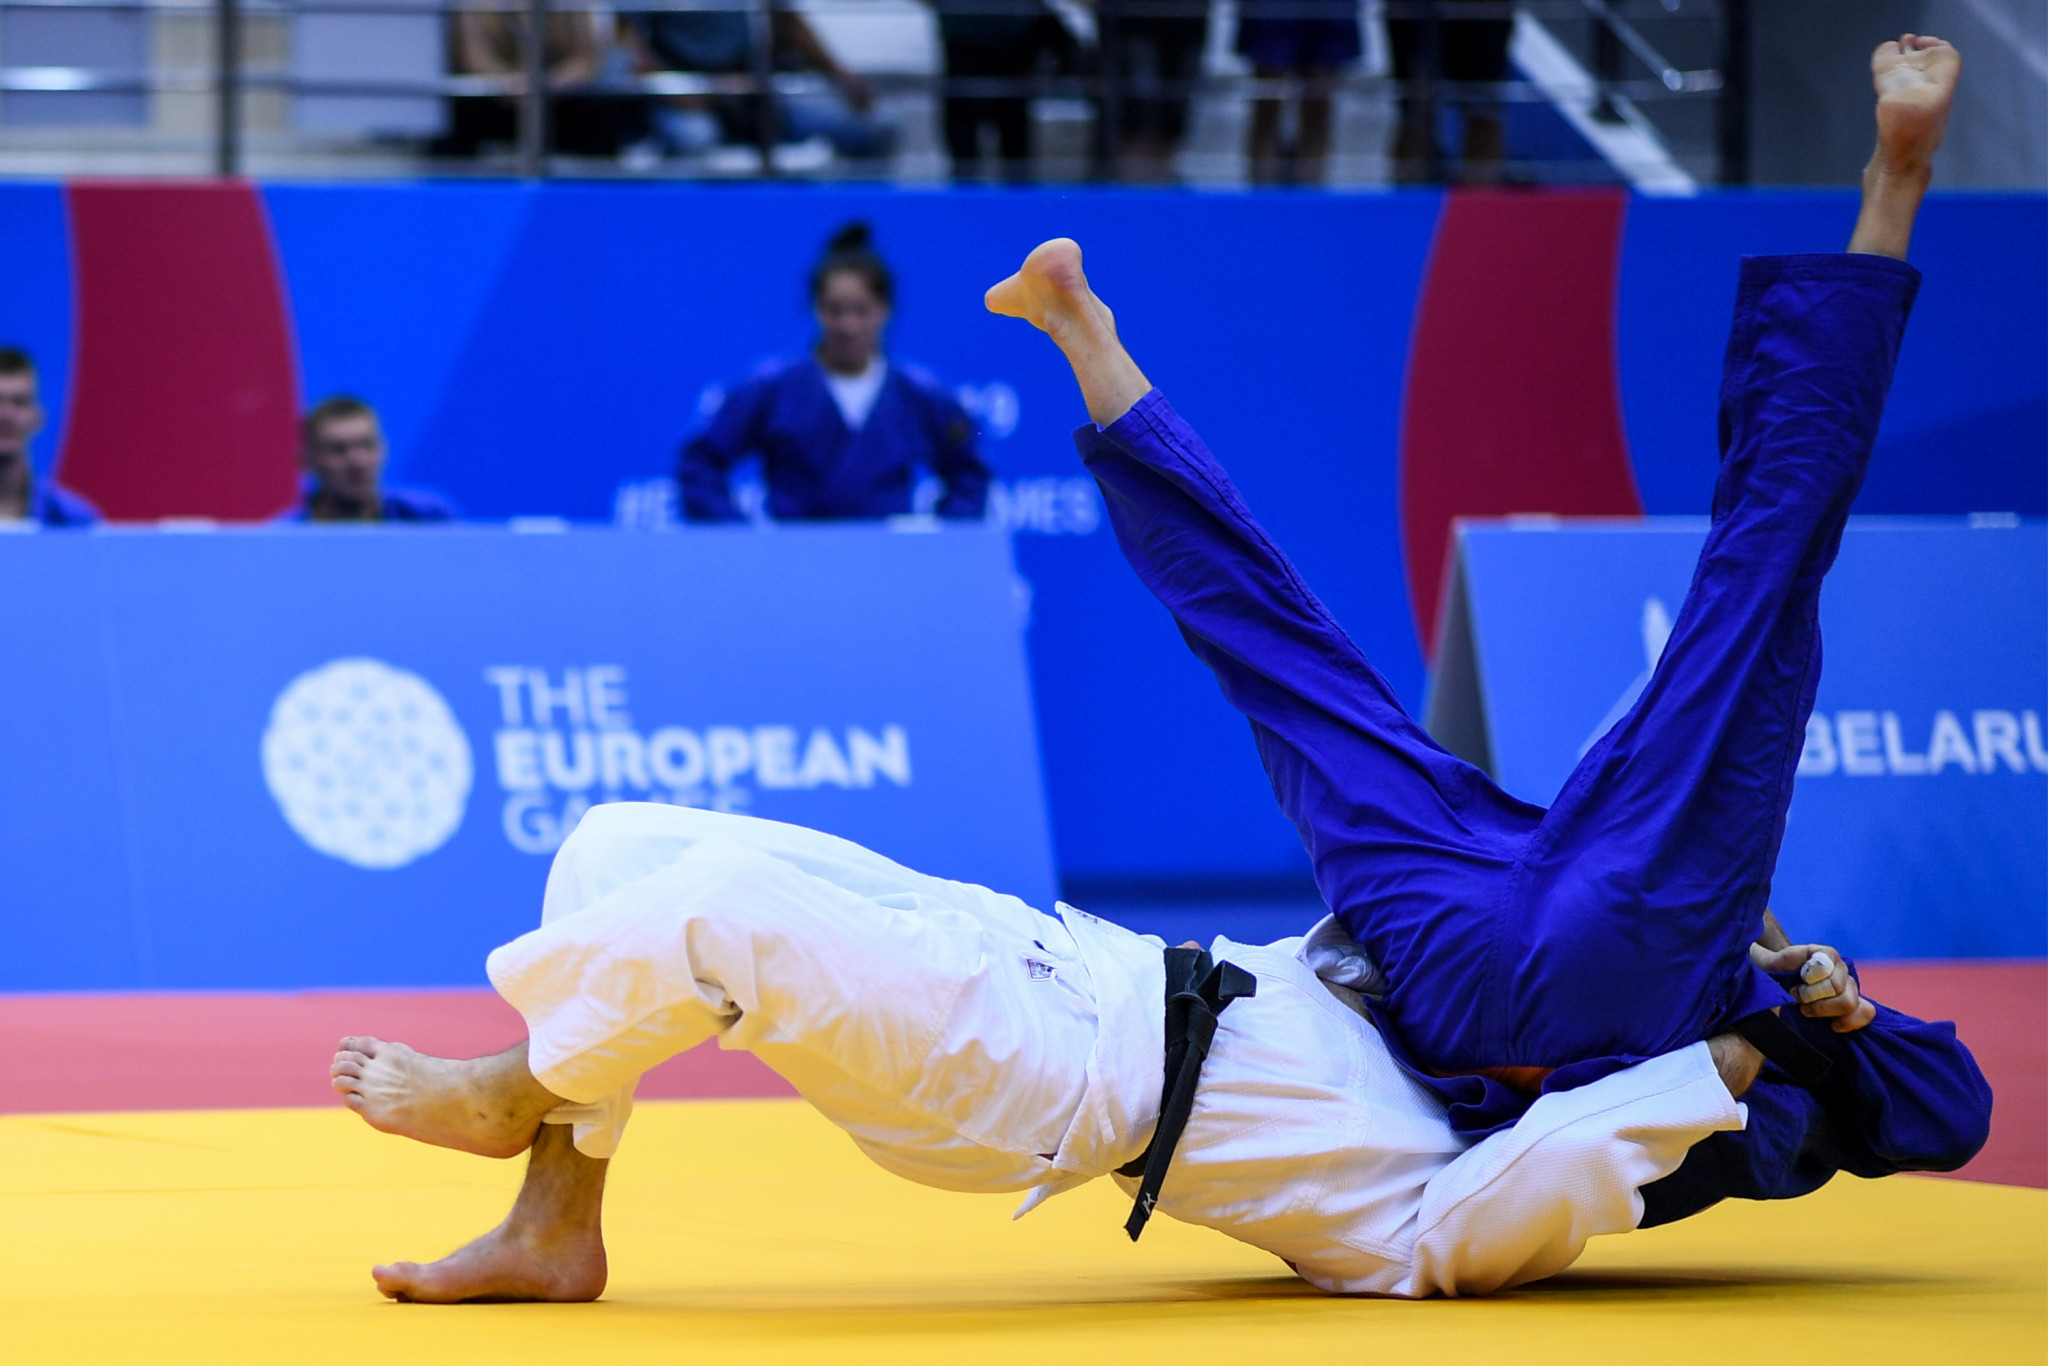 Judo is among the sports organisers plan to stage in Krynica-Zdrój ©Getty Images